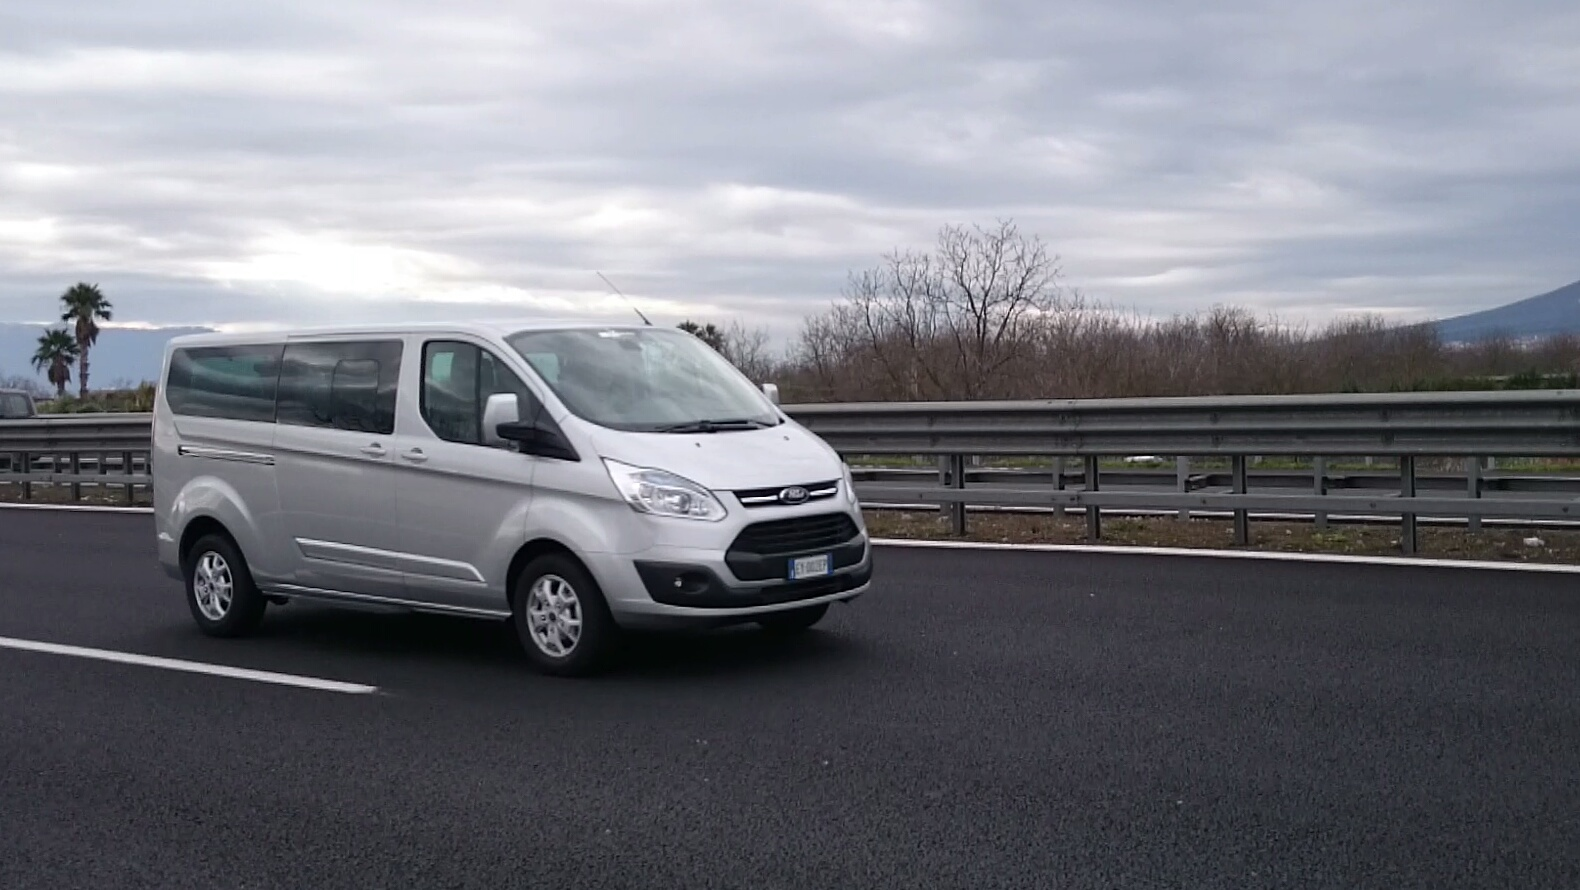 Ford_Tourneo_1_ok